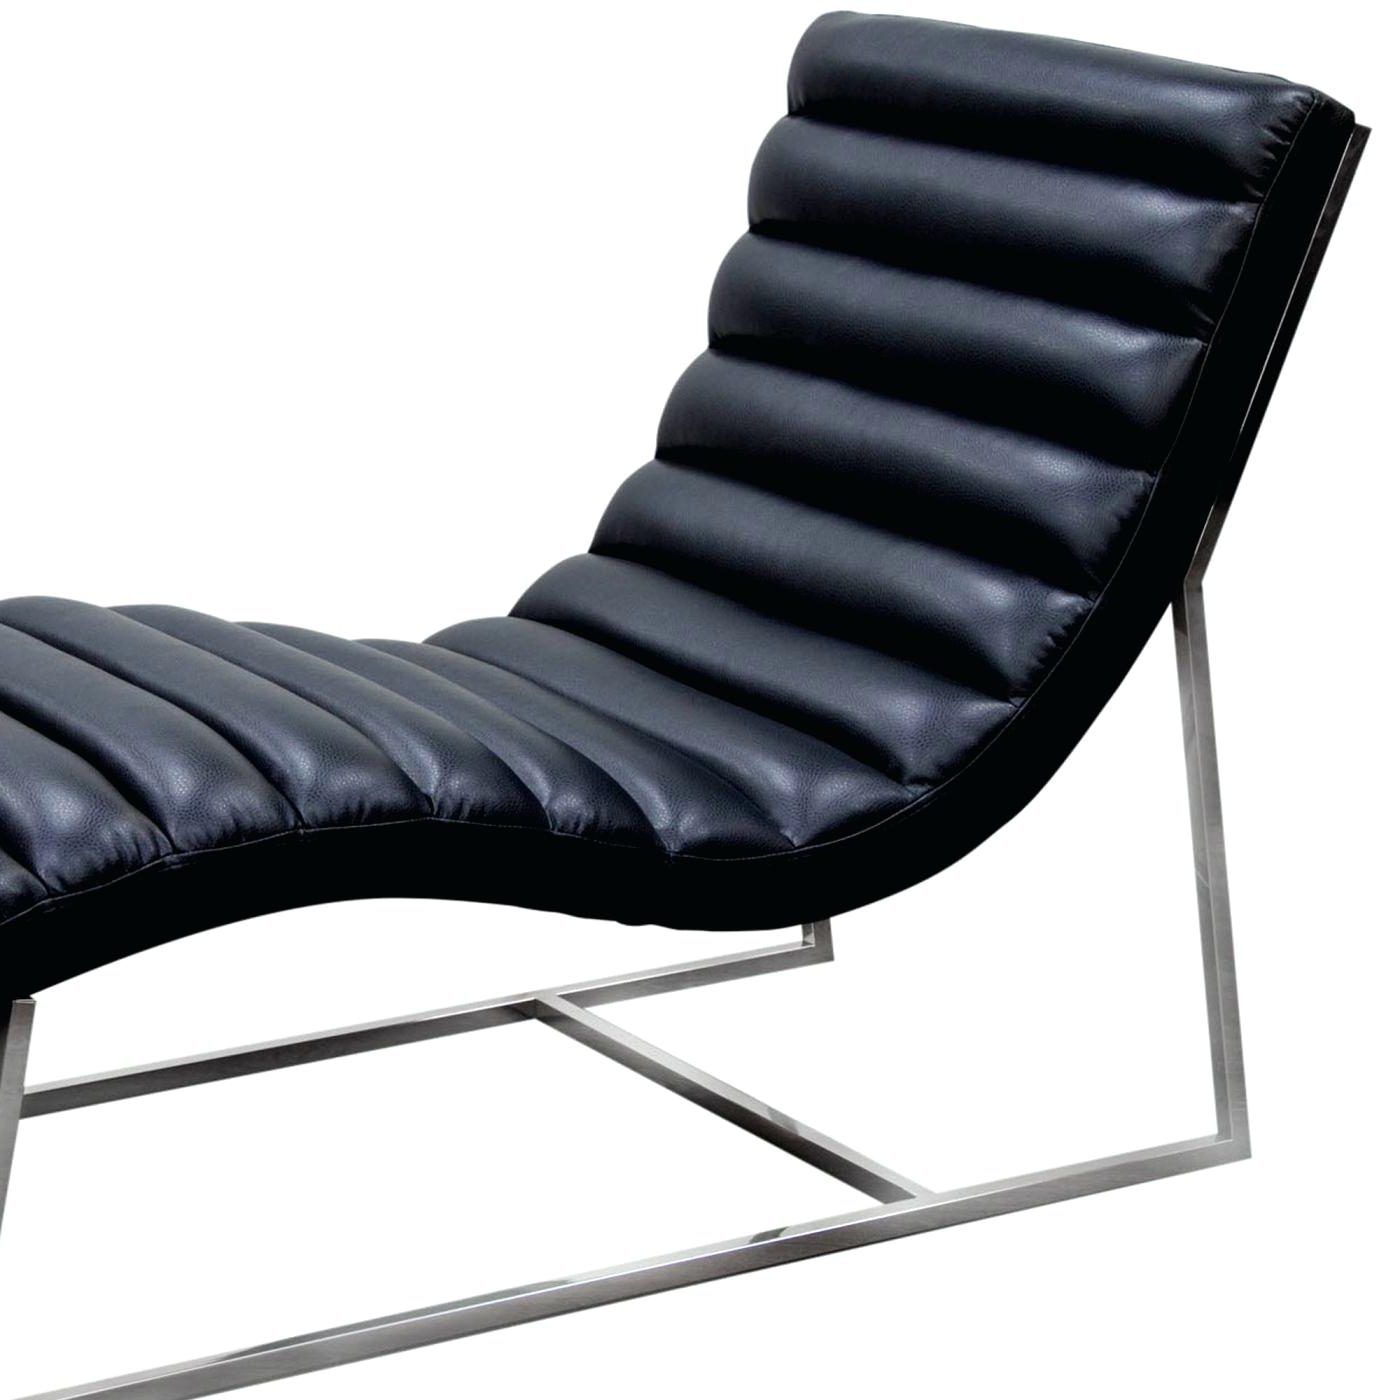 Damask Chaise Lounge Chairs Inside Well Known Black Chaise Iron Lounge Chairs Sofa Outdoor – Nikeaf (View 6 of 15)